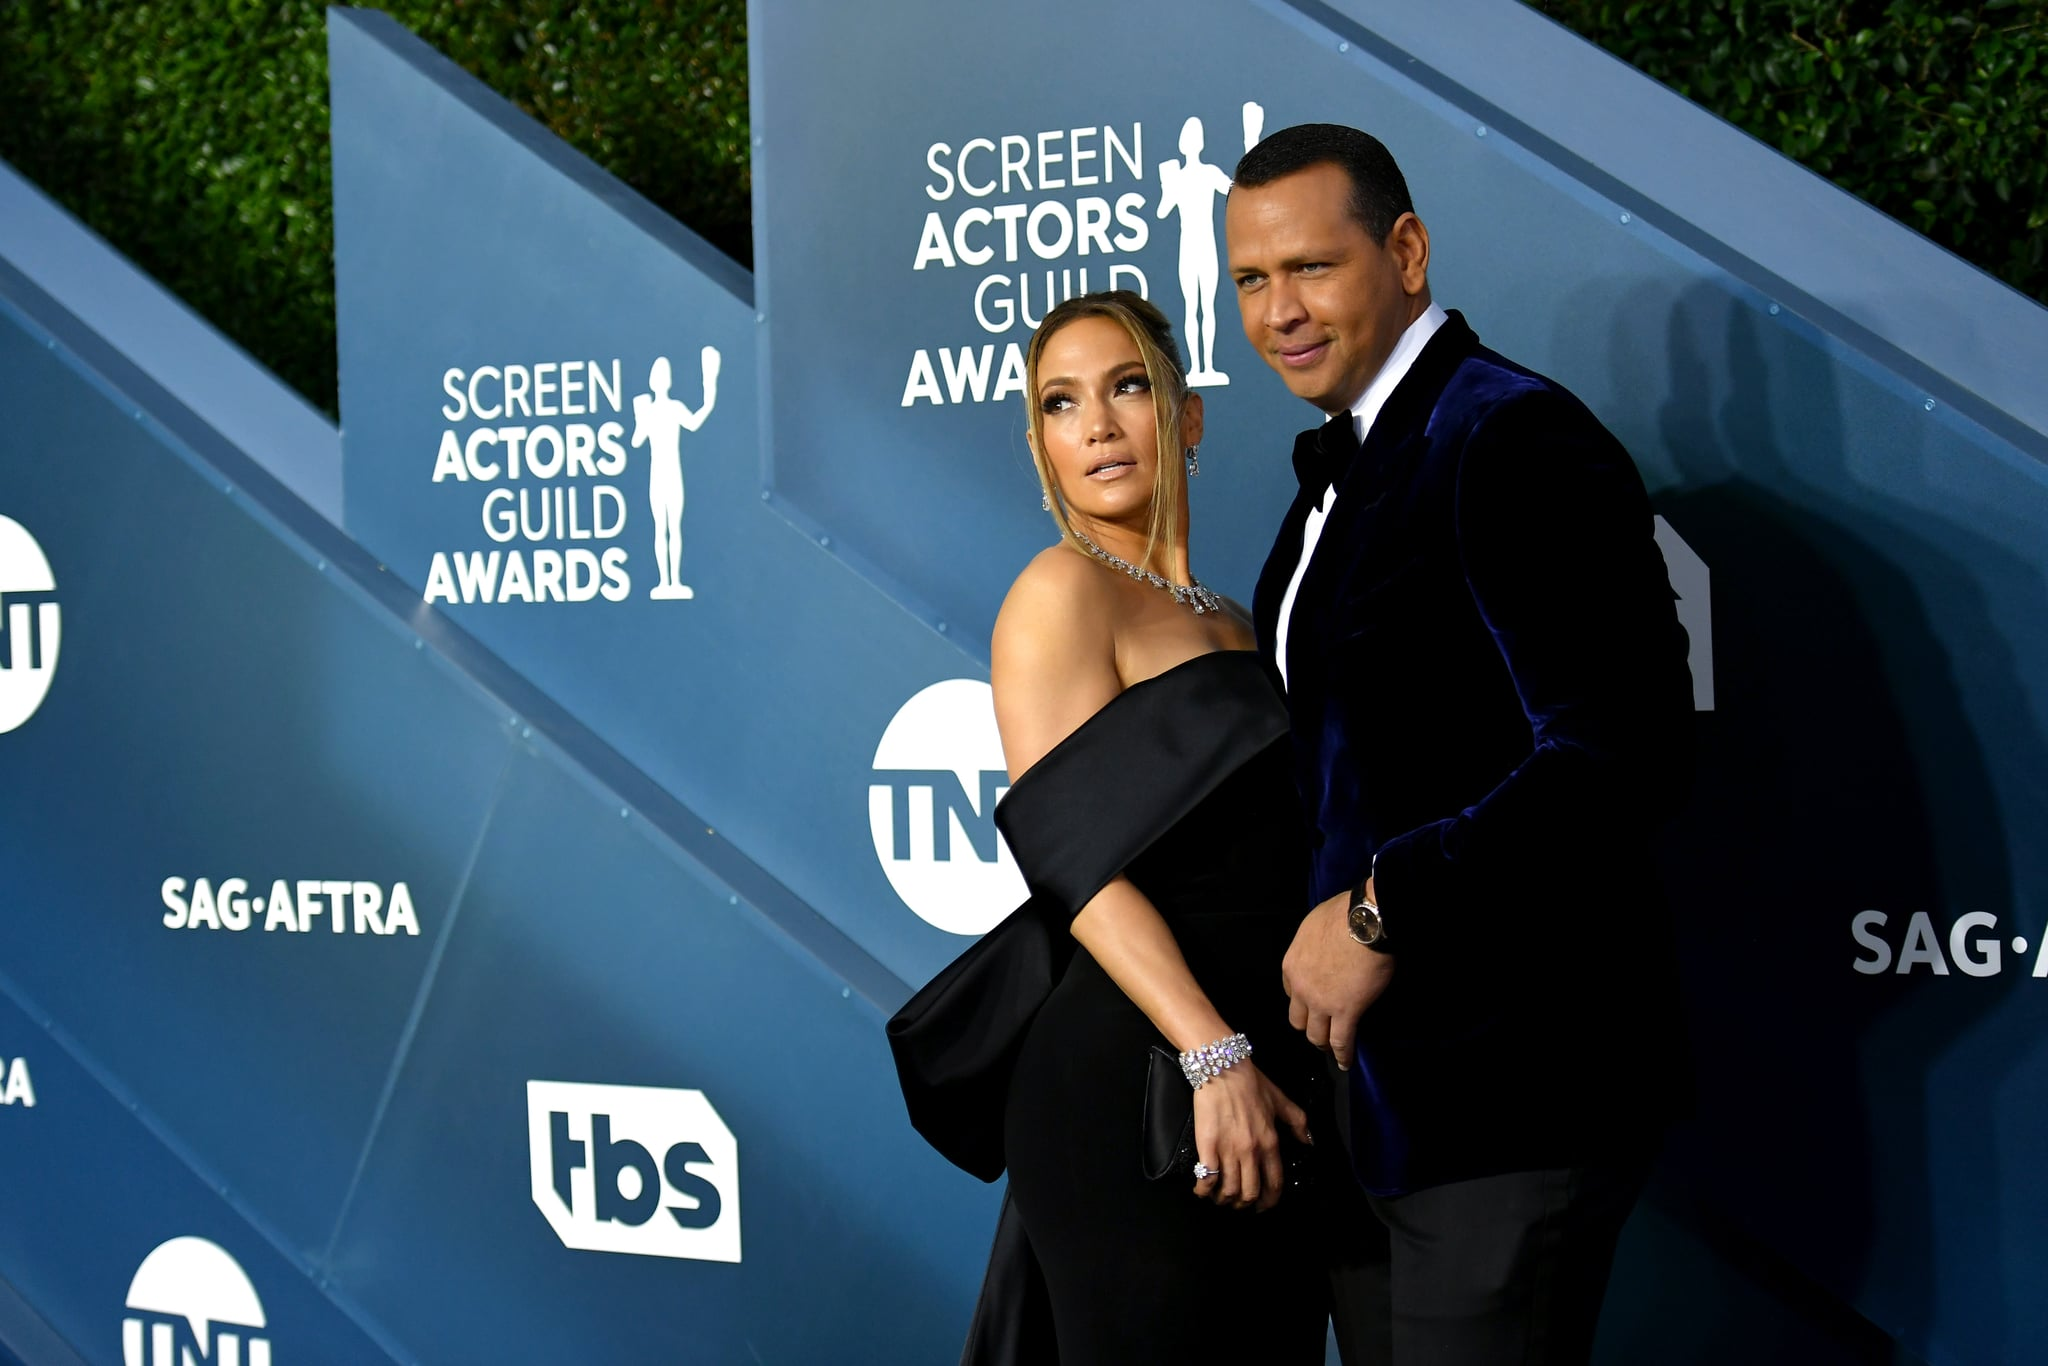 LOS ANGELES, CALIFORNIA - JANUARY 19: Jennifer Lopez and Alex Rodriguez attend the 26th Annual Screen Actors Guild Awards at The Shrine Auditorium on January 19, 2020 in Los Angeles, California. 721384 (Photo by Mike Coppola/Getty Images for Turner)